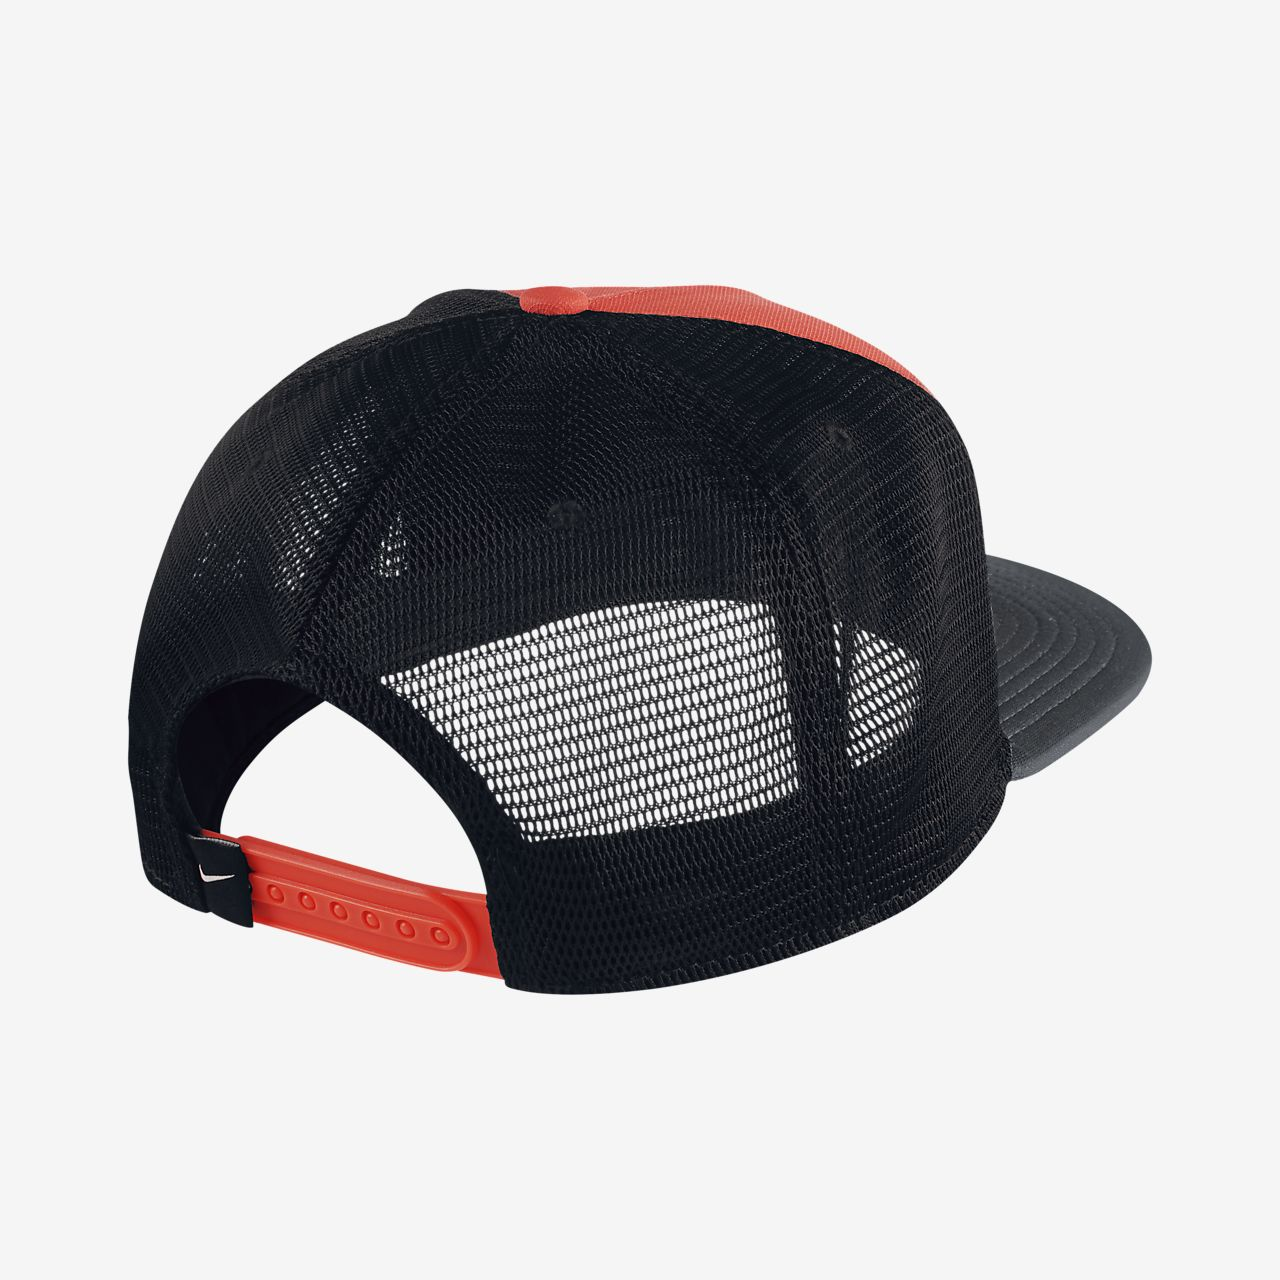 e03ed513b44fc Nike Pro Mesh Adjustable Golf Hat. Nike.com SG